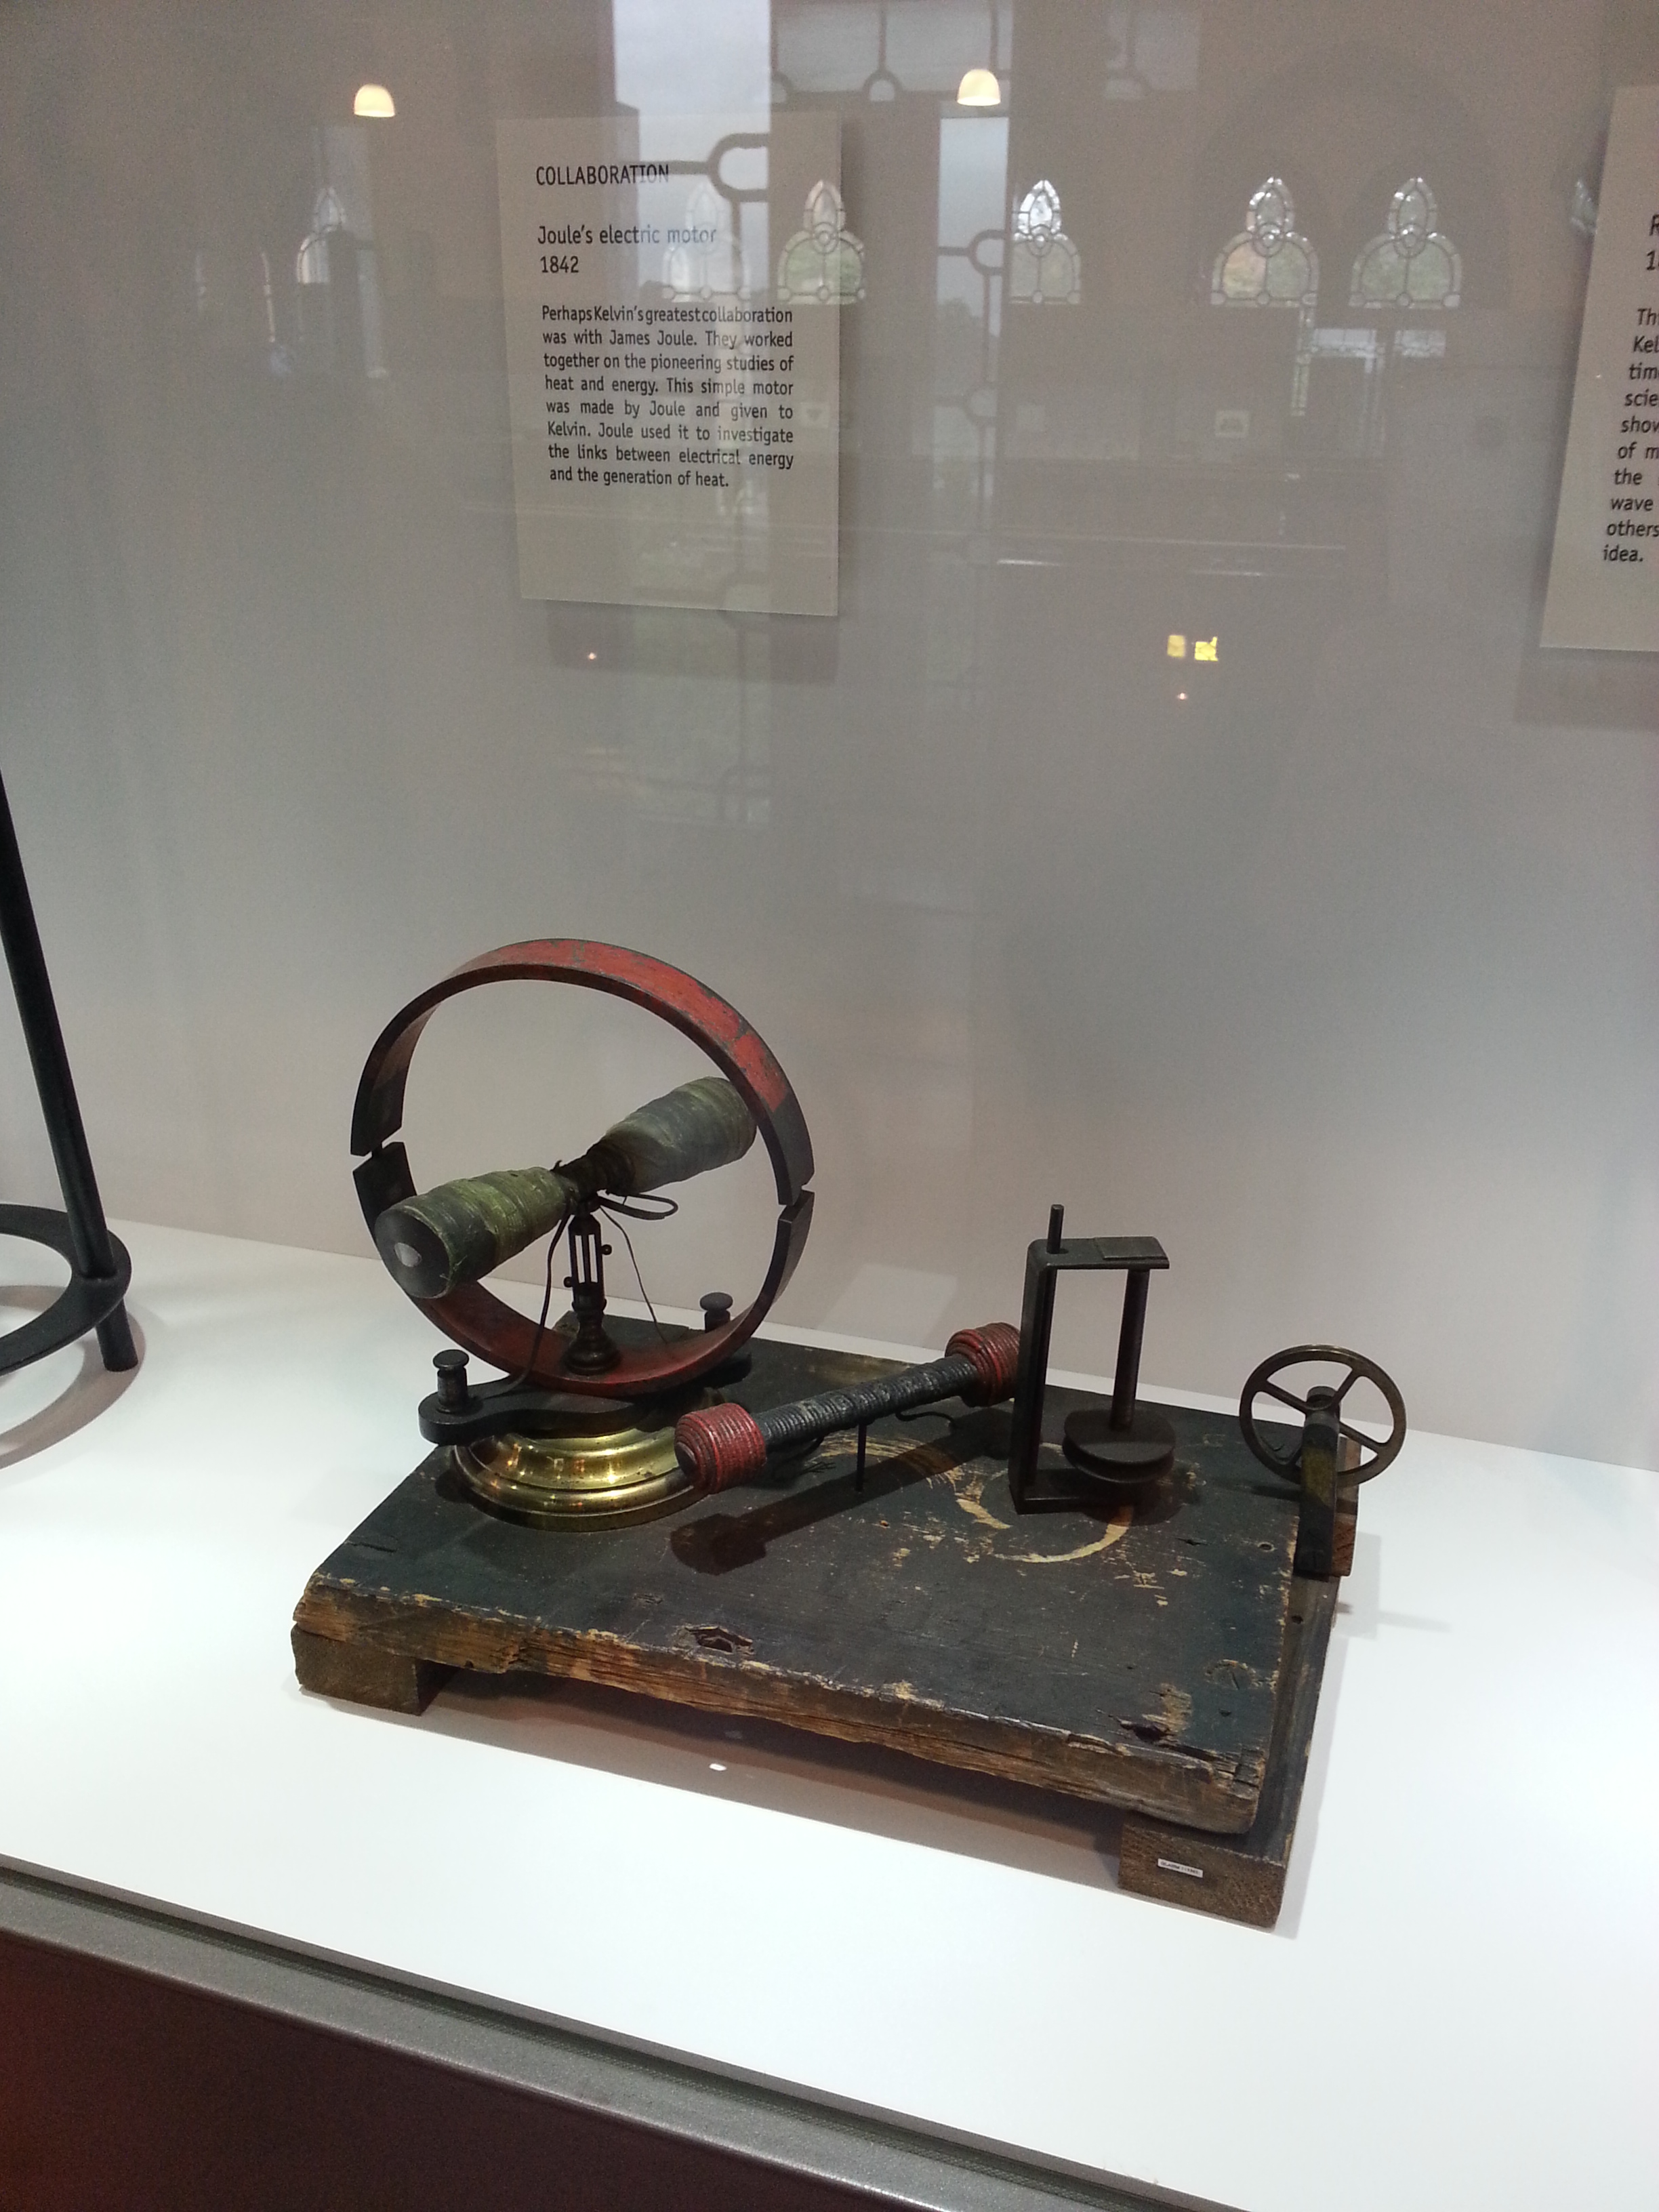 An early electric motor given to Lord Kelvin by James Joule